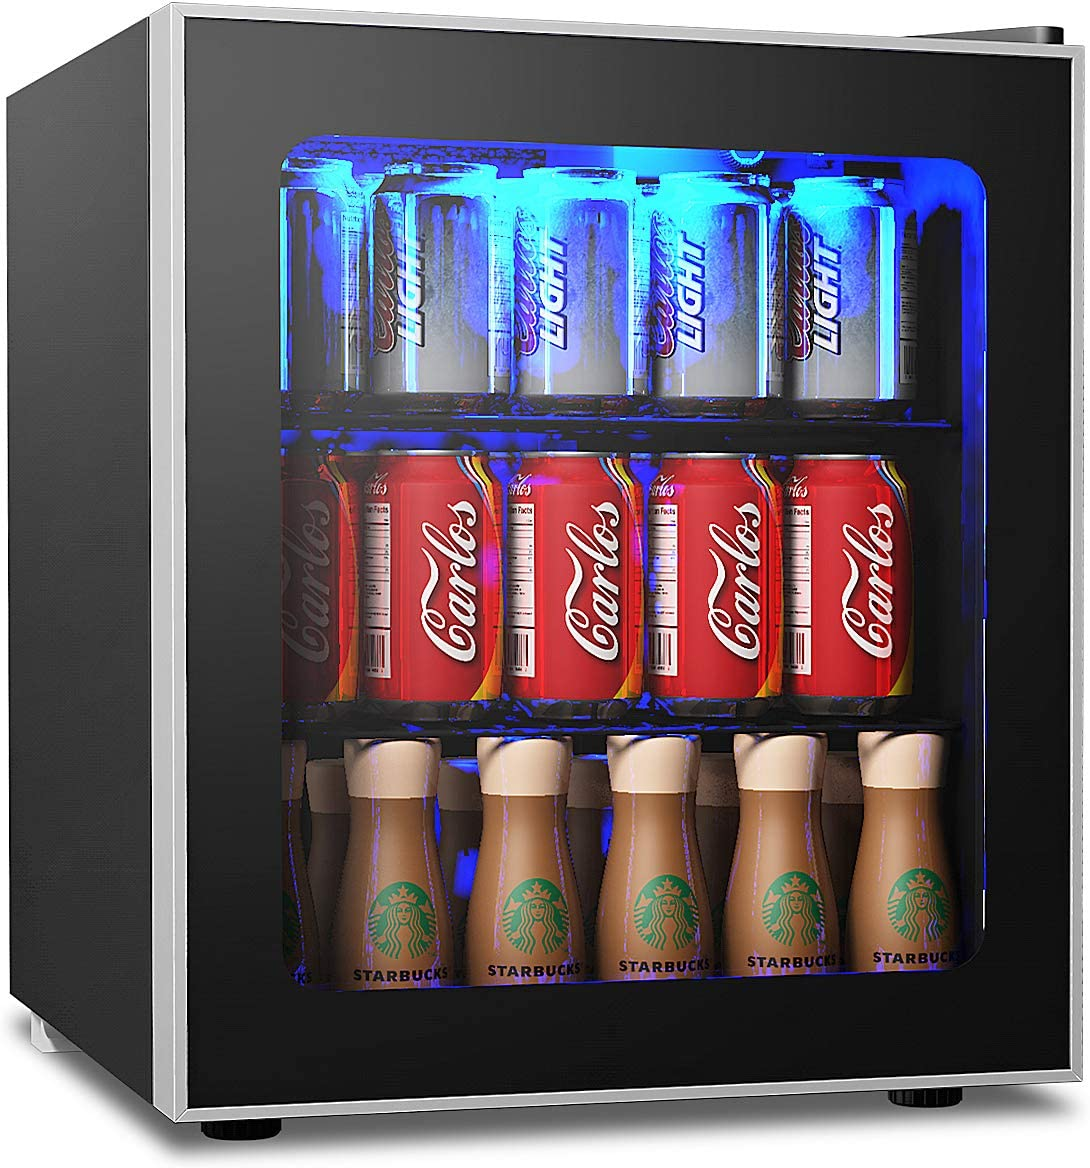 Costway Beverage Refrigerator And Cooler 62 Cans Capacity Mini Drink Fridge With Led Light Adjustable Thermostat Glass Door Removable Shelves For Soda Beer Or Wine For Office Bar 1 6 Cu